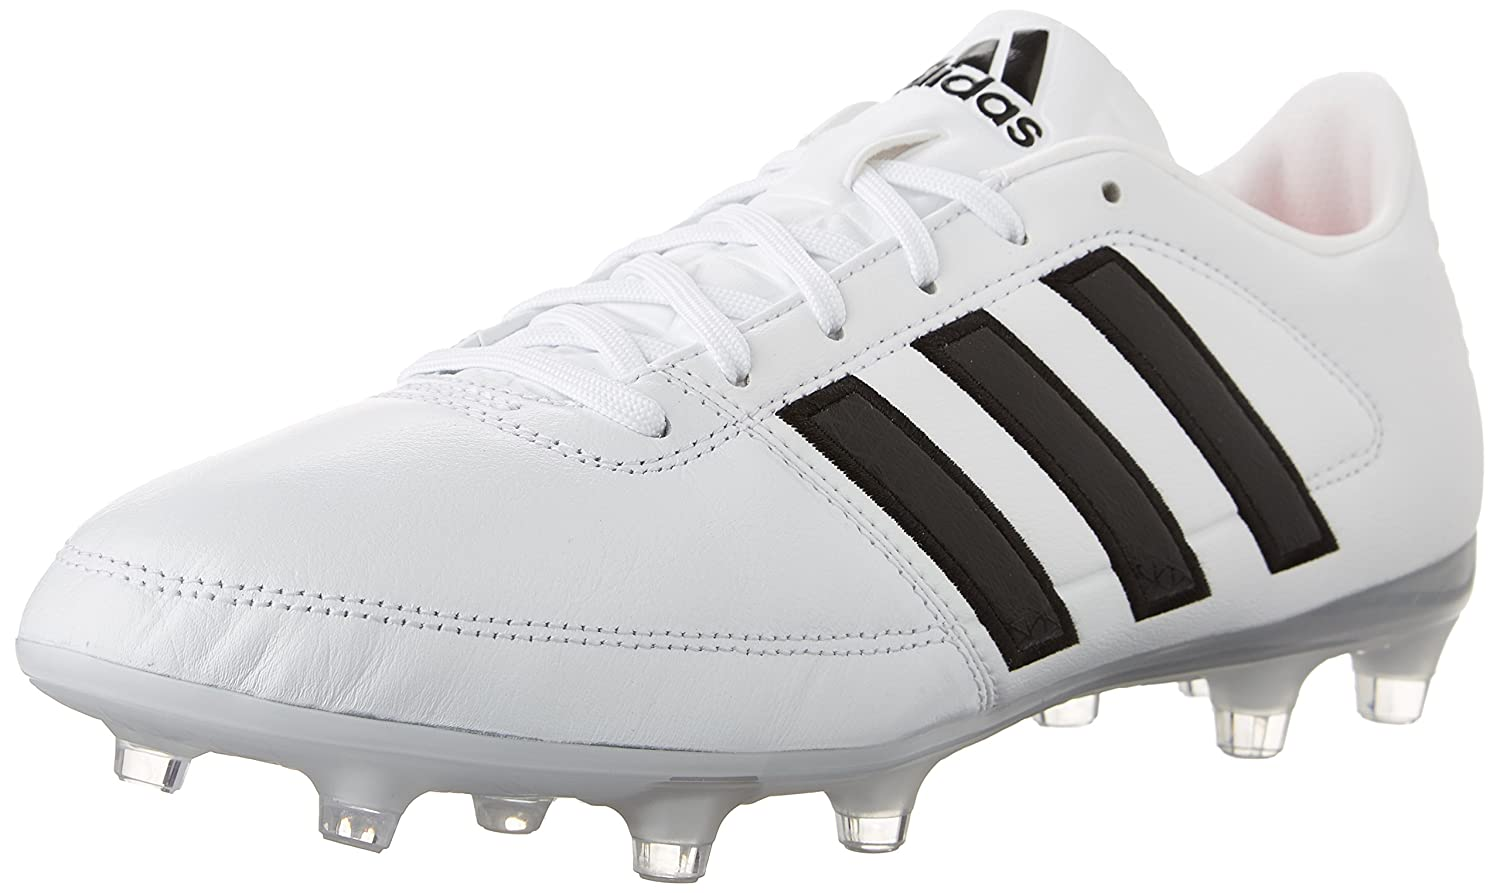 adidas Performance Men's Gloro 16.1 FG Soccer Shoe Gloro 16.1 FG-M